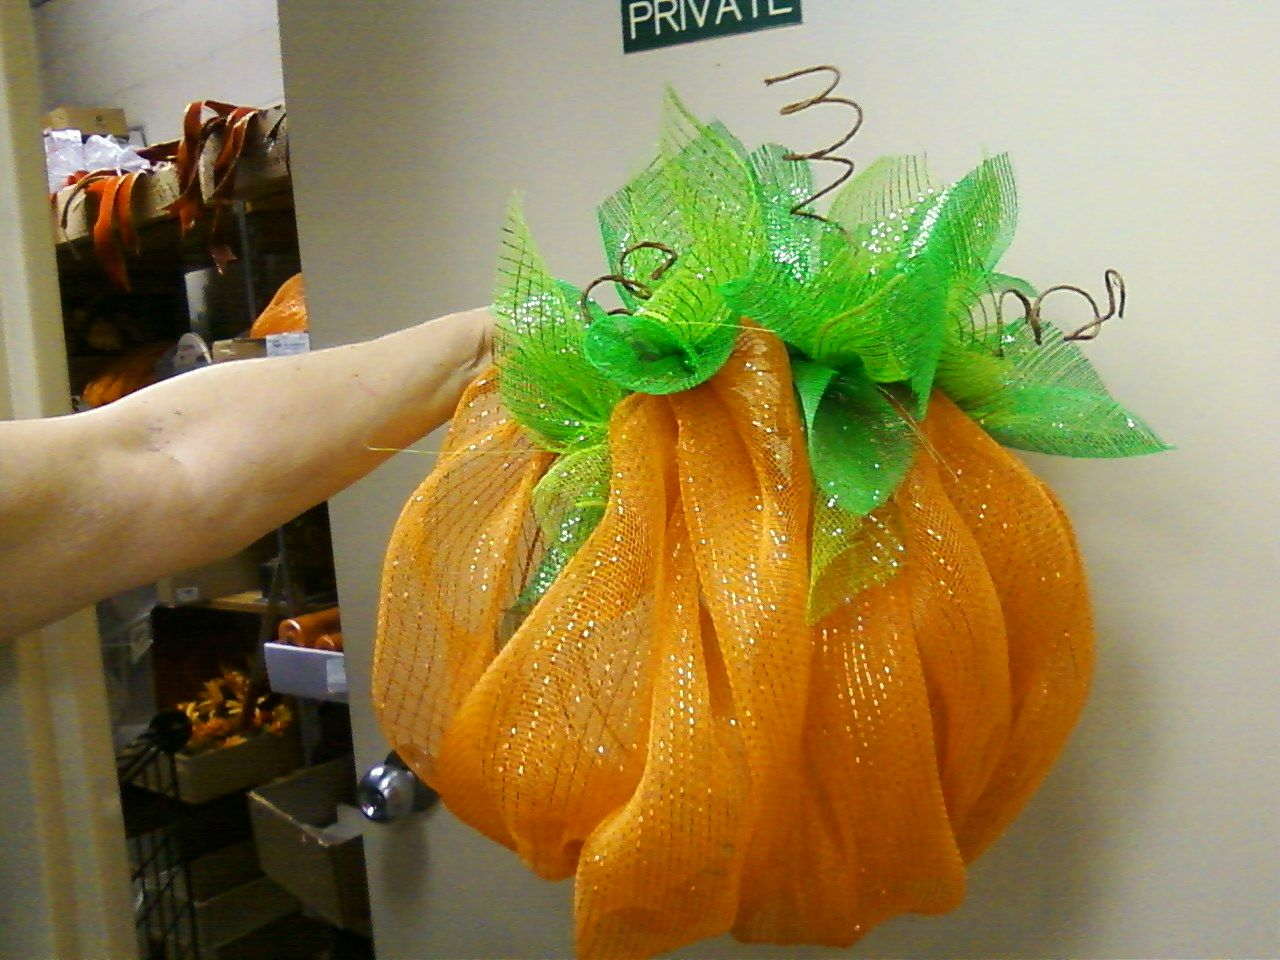 This is my new pumpkin wreath I am making for this fall.  It is really authentic of a pumpkin and can make one in different sizes to suit your taste.  Small pumpkins are $25 and large ones are $35.00